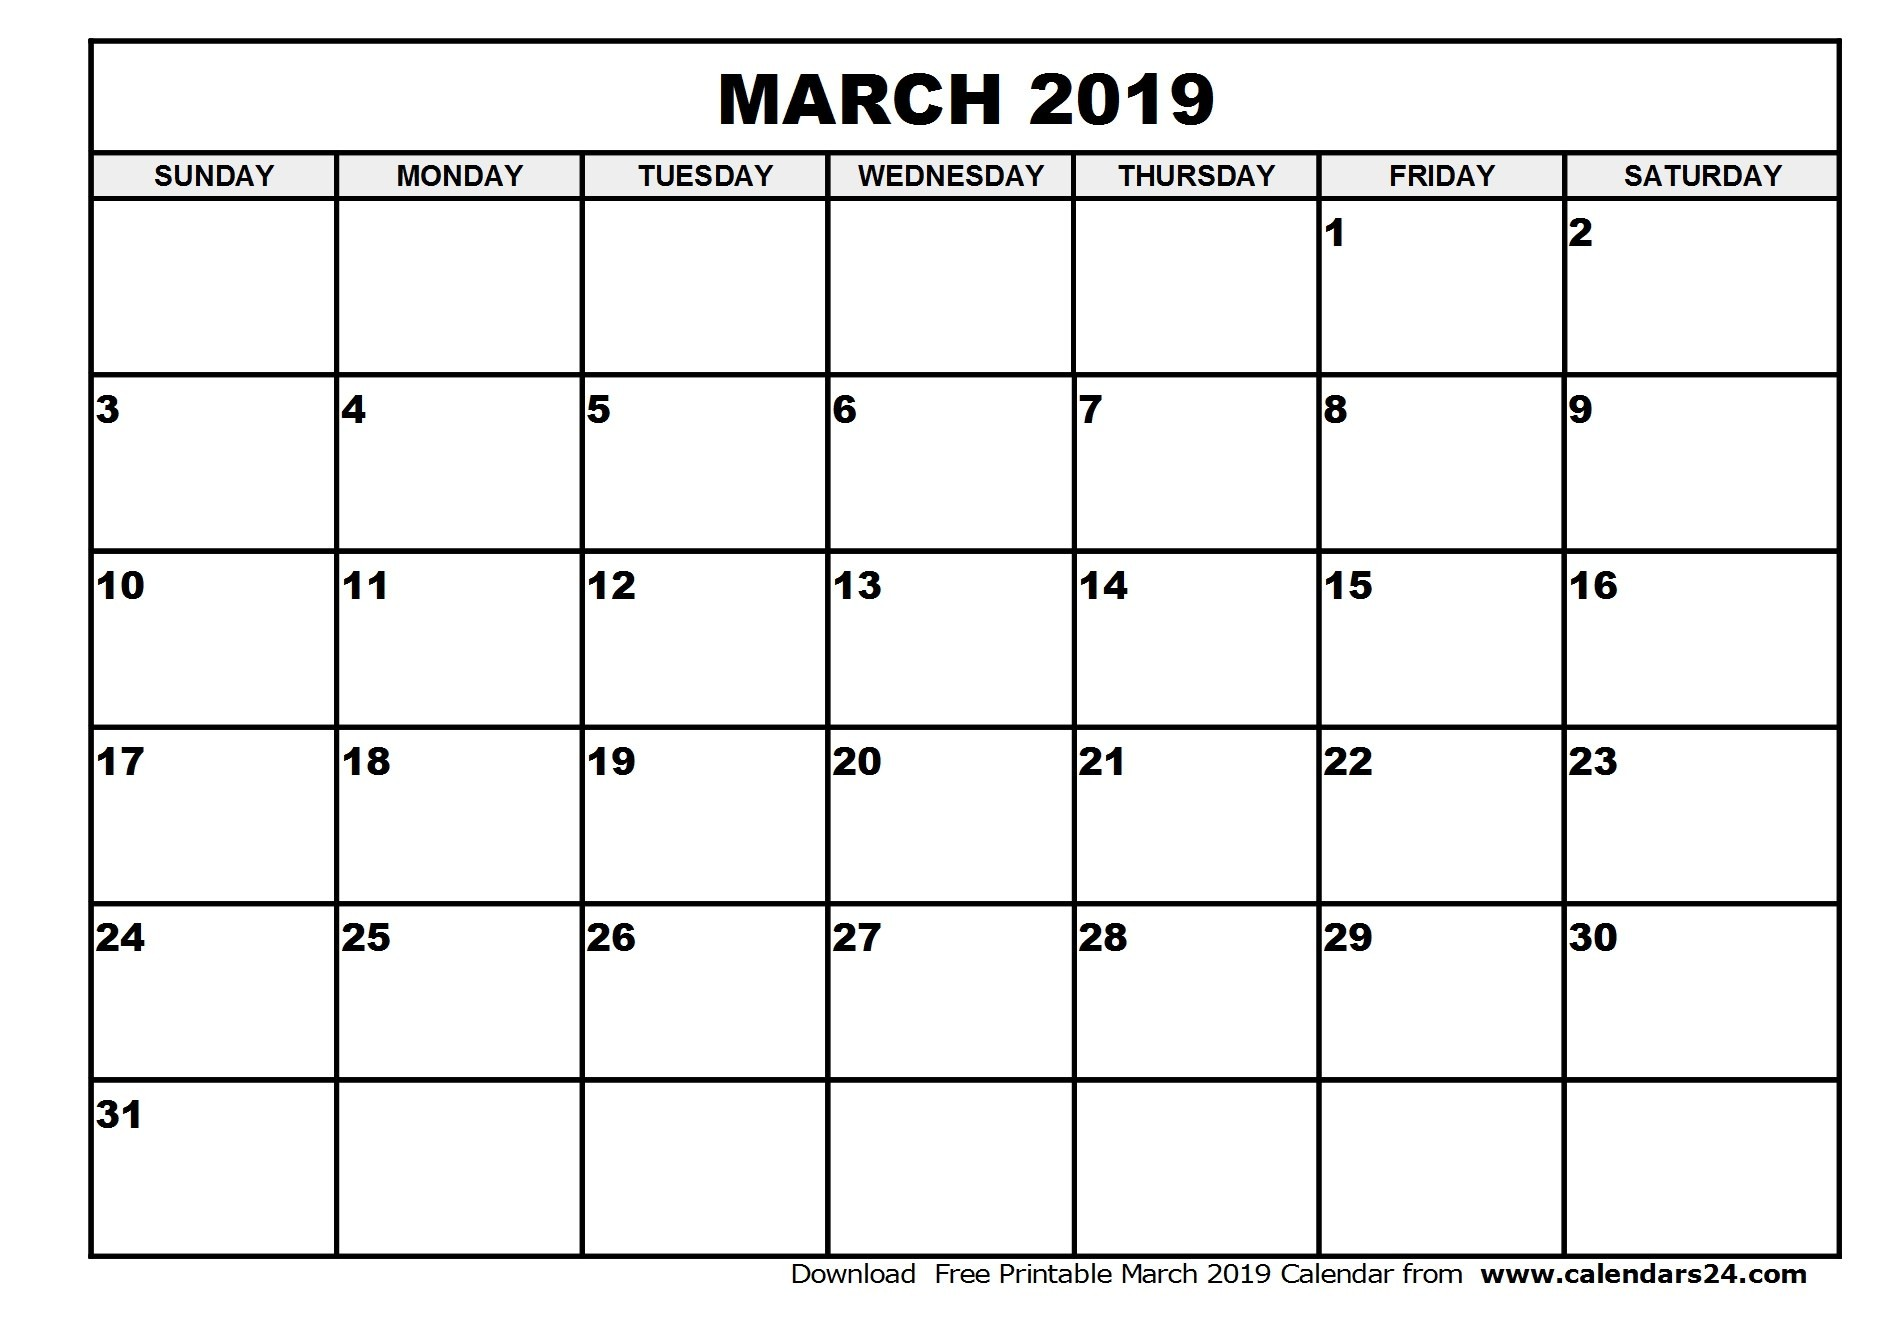 Empty Calendar March 2019 Mejores Y Más Novedosos Calendar March 2019 Of Empty Calendar March 2019 Más Recientemente Liberado March 2019 Calendar Wallpaper Desktop March Calendar Calenda2019